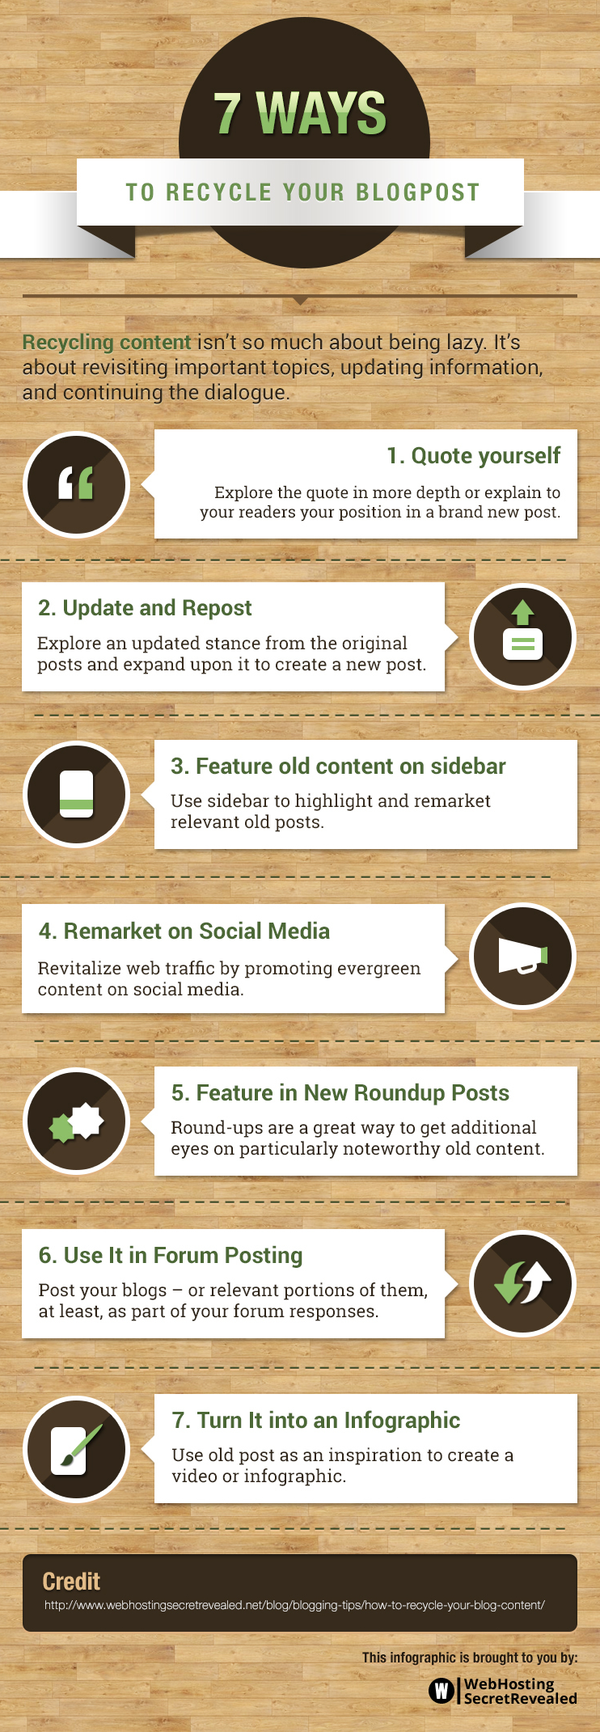 Blogging Infographic by Web Hosting Secret Revealed (WHSR) . Infographic: 7 ways to make the most out of old blog posts